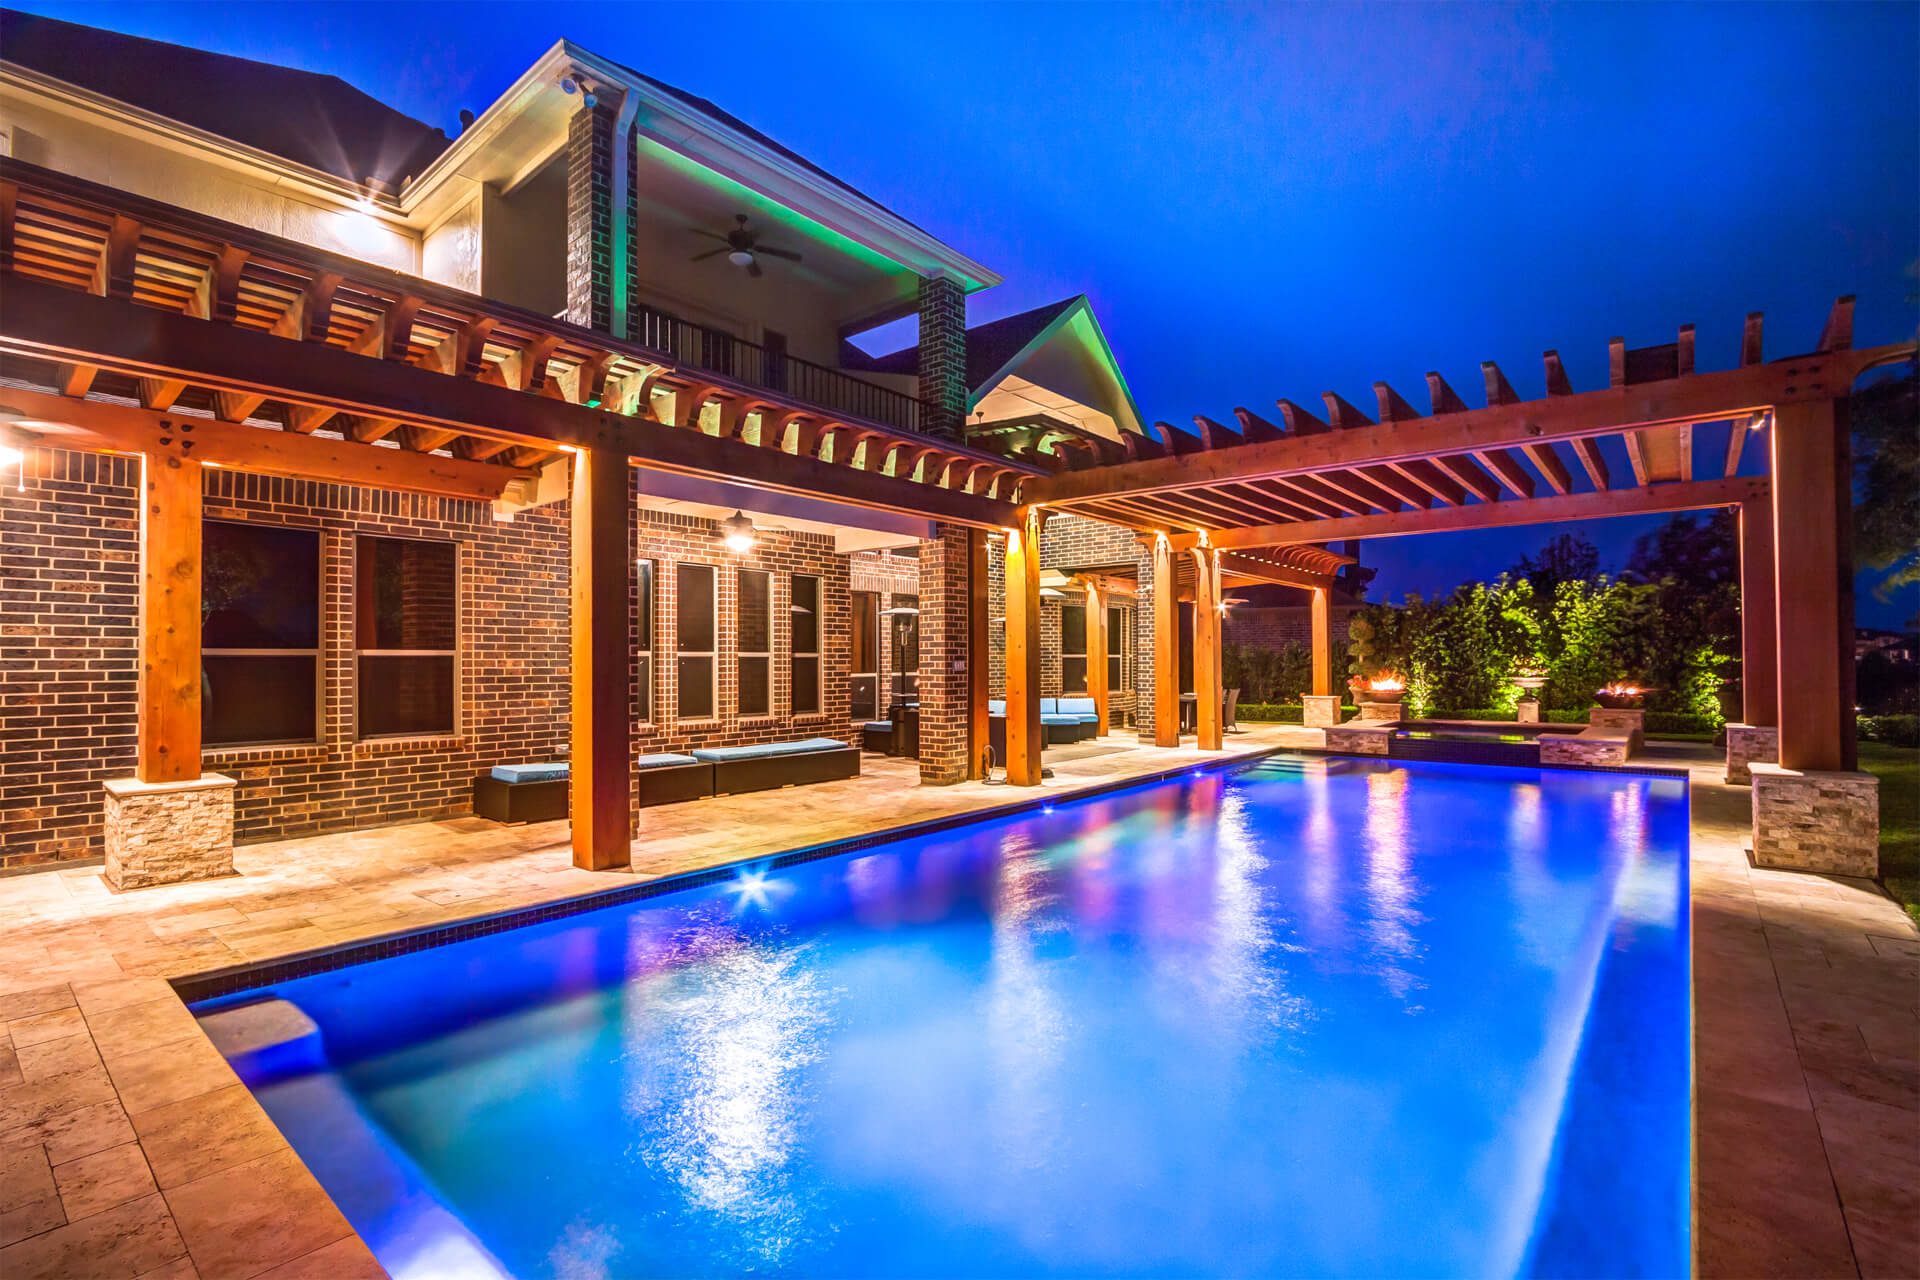 Custom Cedar Pergola over Pool with Living Space and Outdoor Kitchen in Houston, Texas